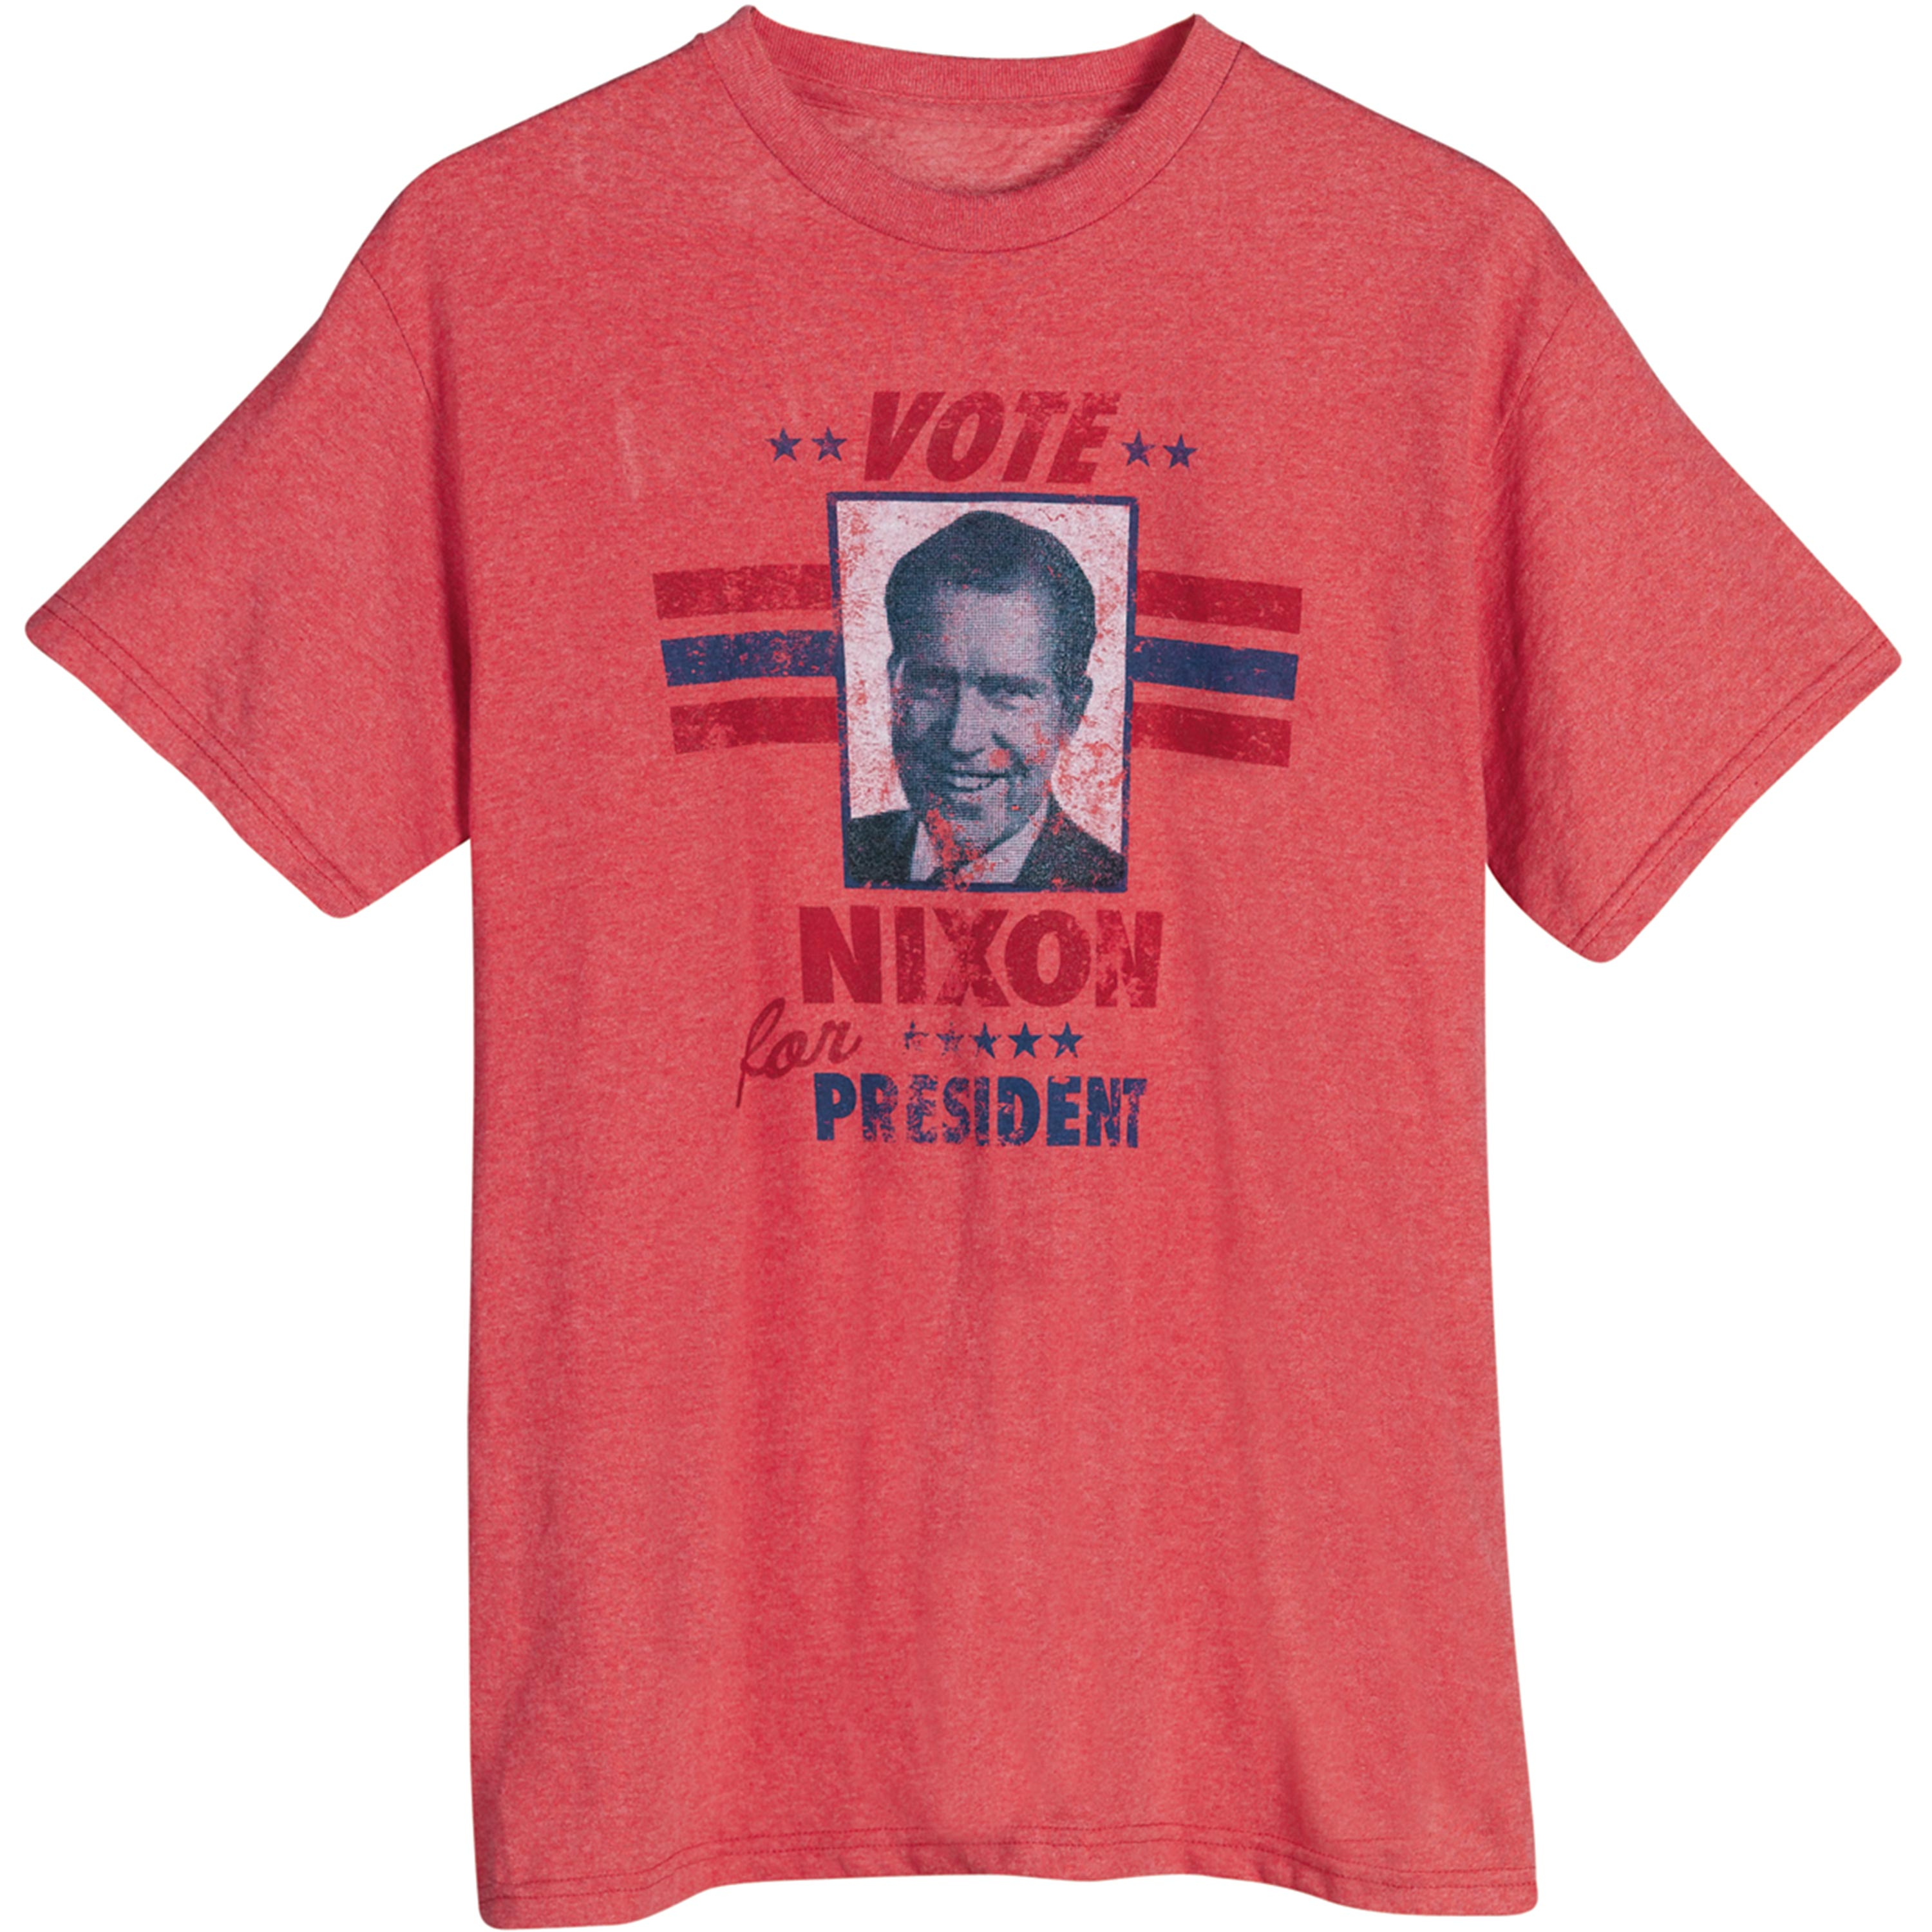 SIGNALS Vintage-Look Presidential Election T-Shirt - Nixon at Sears.com